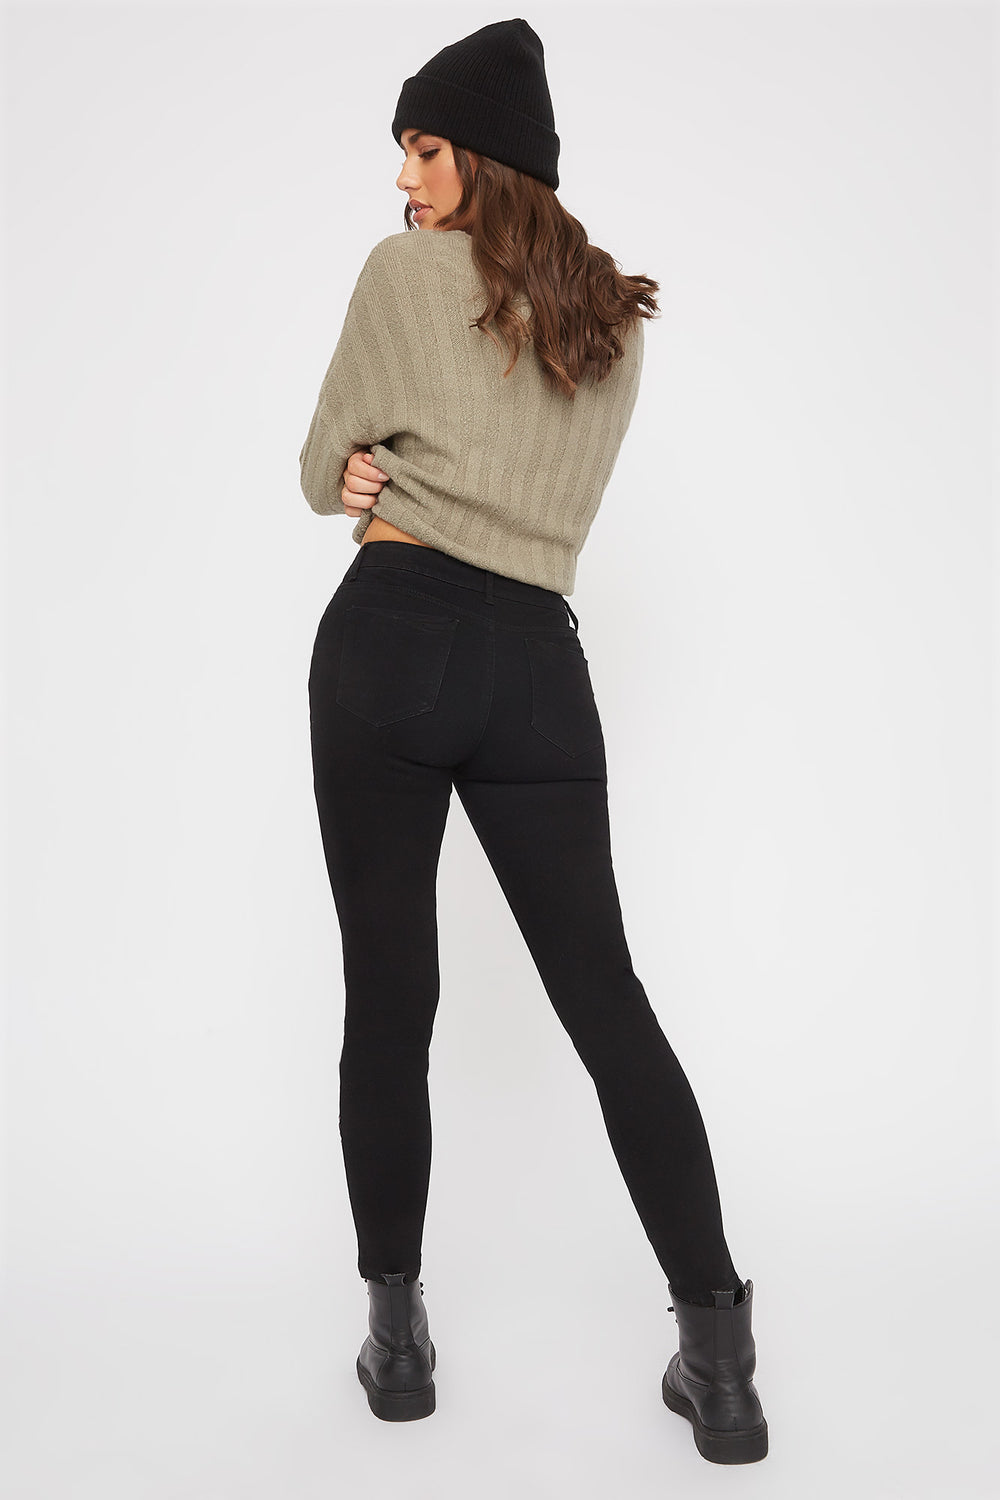 Distressed High-Rise Stretch Push-Up Skinny Jean Black